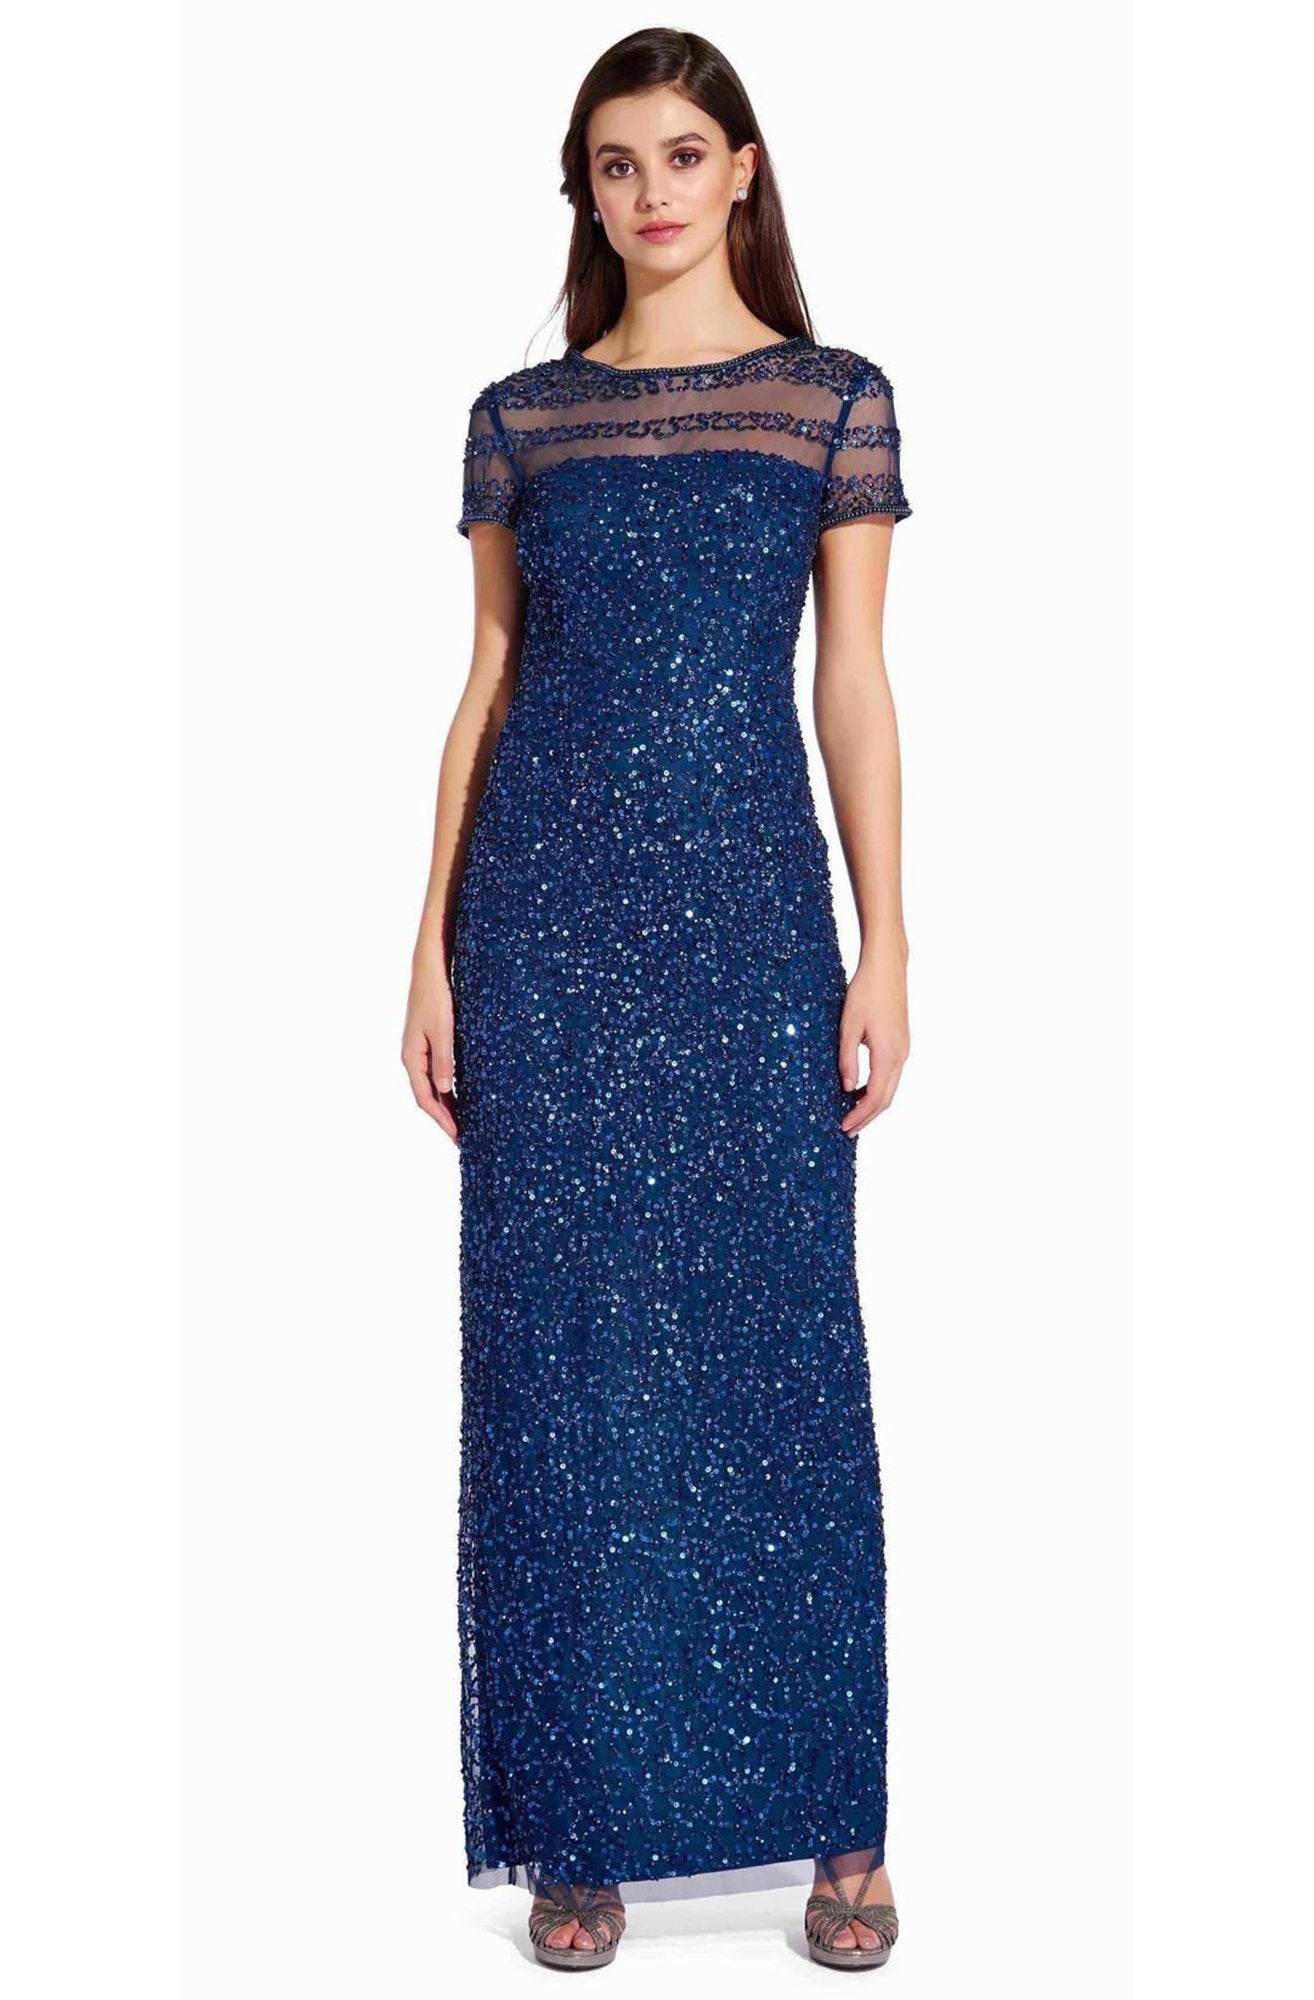 Adrianna Papell - AP1E205064 Short Sleeve Sheer Shoulders Sequin Dress In Blue